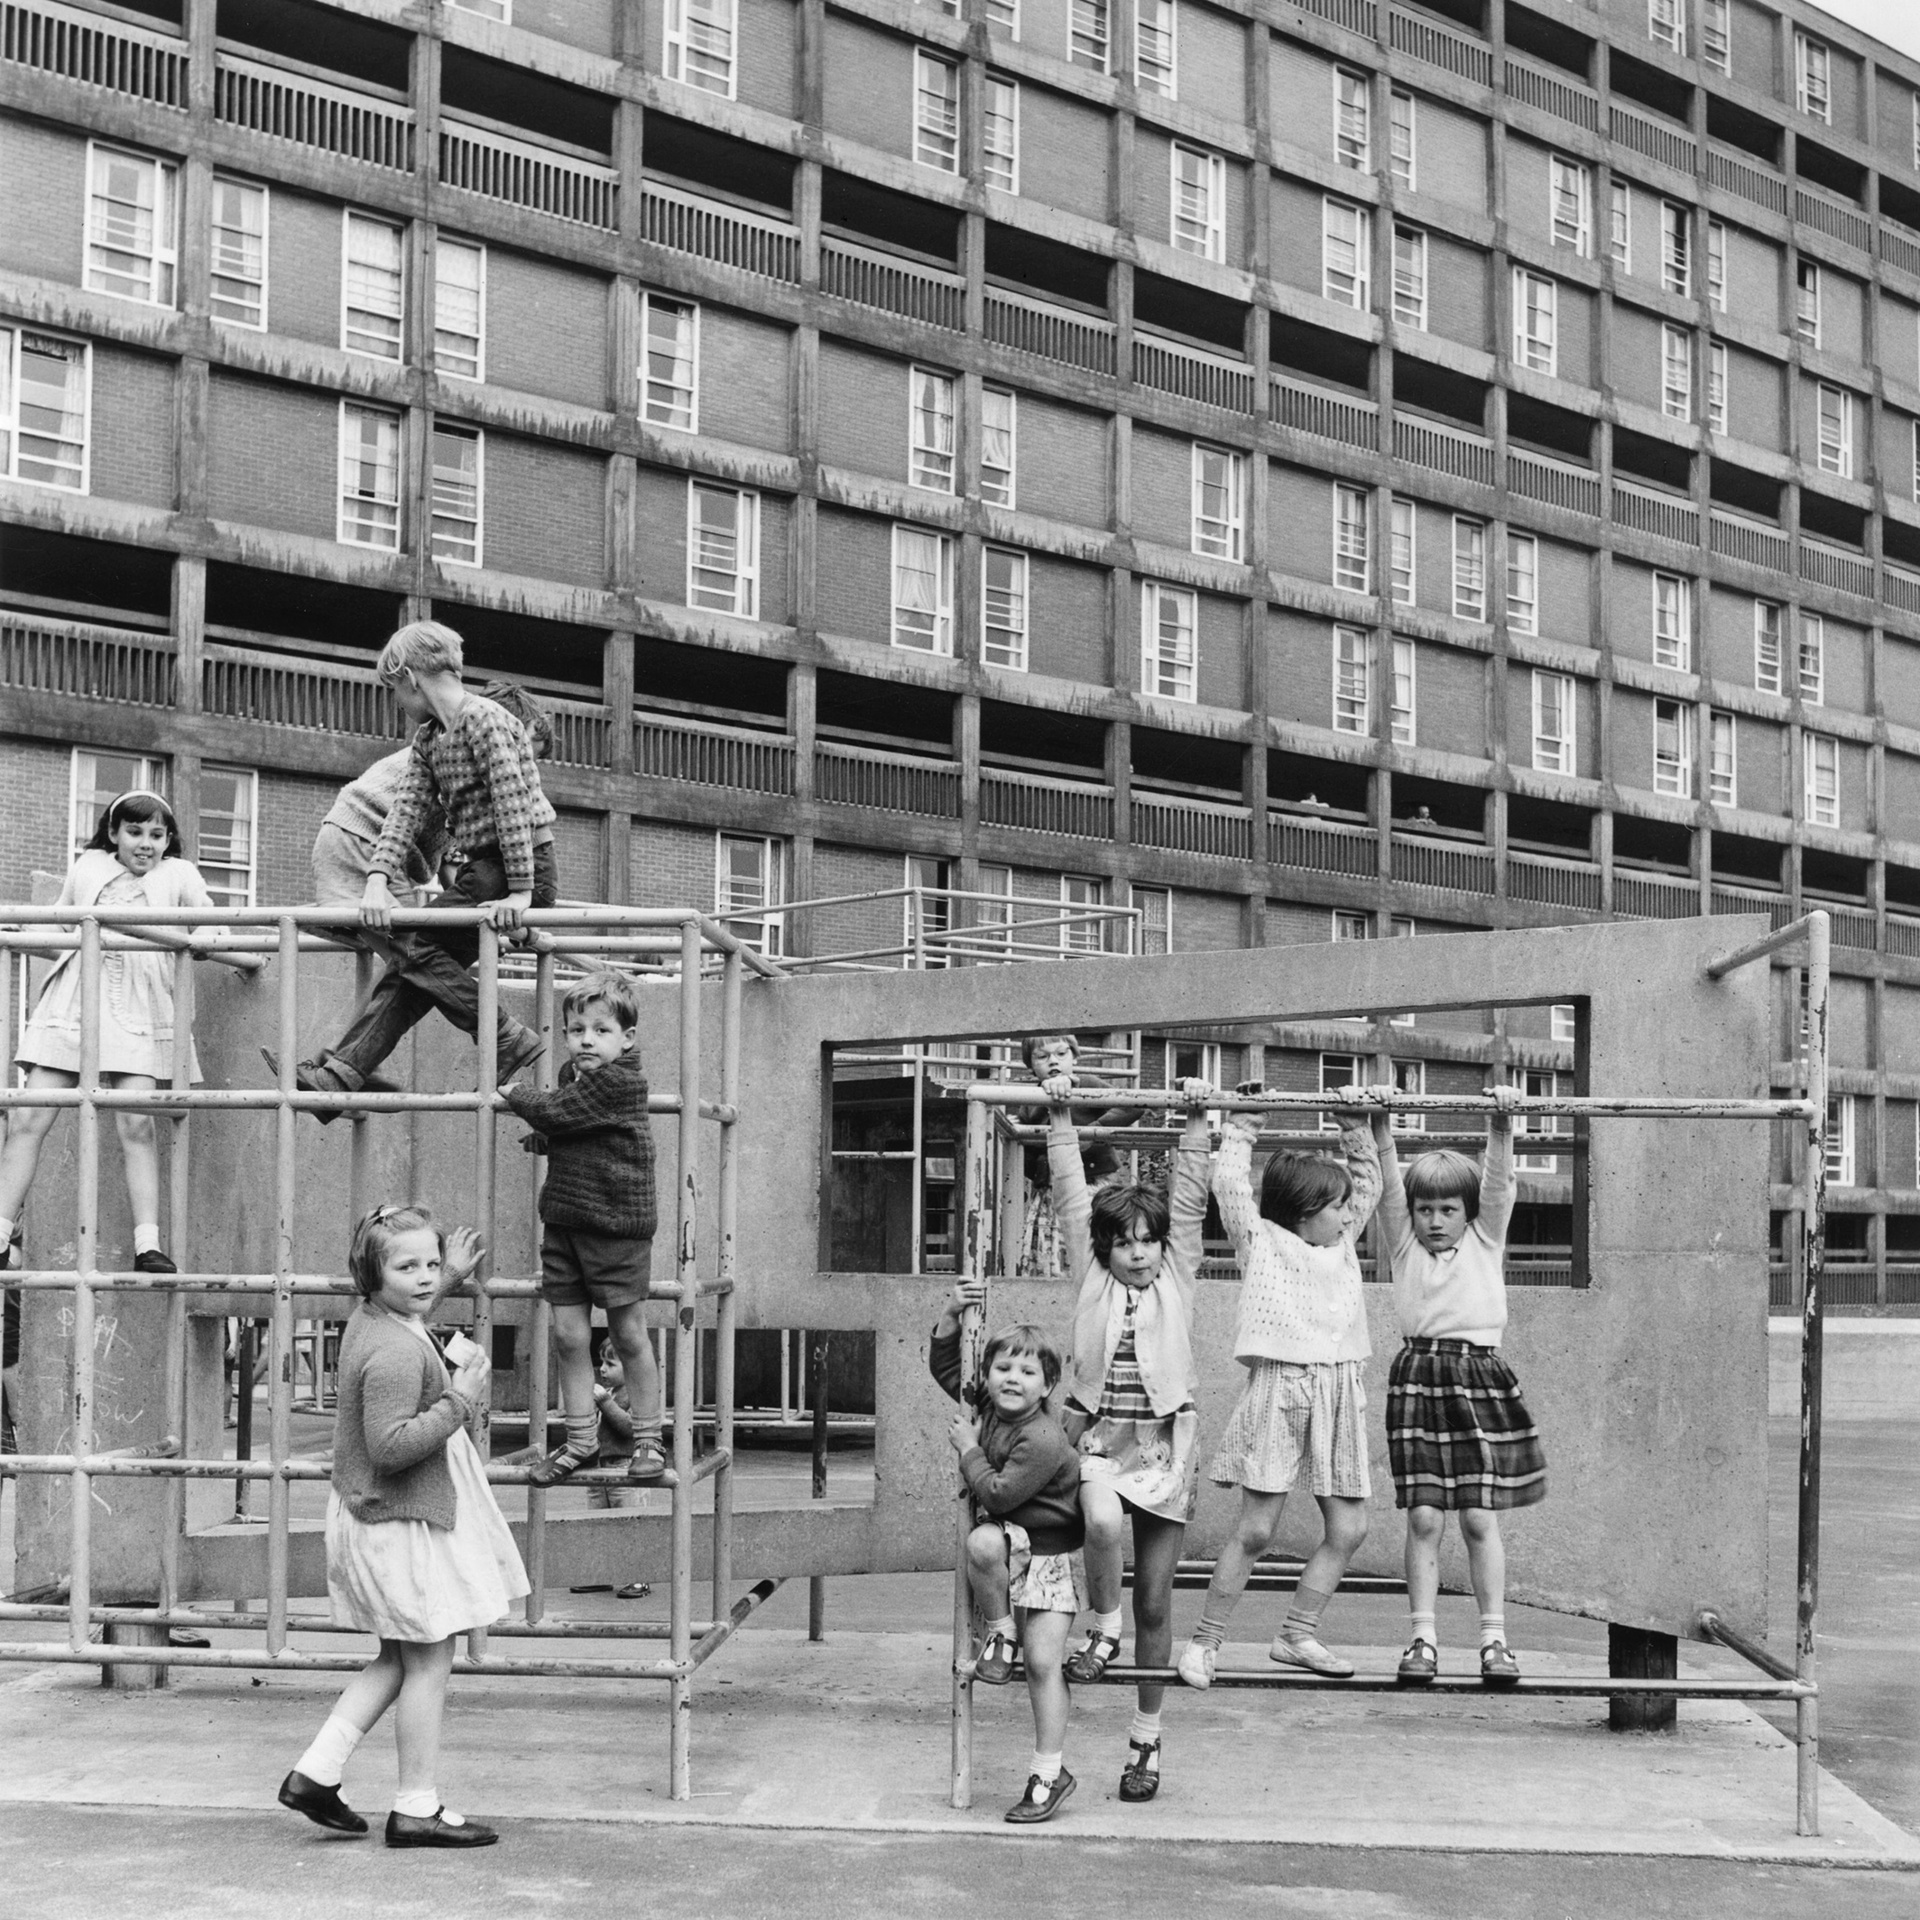 Park Hill estate, Sheffield, 1963